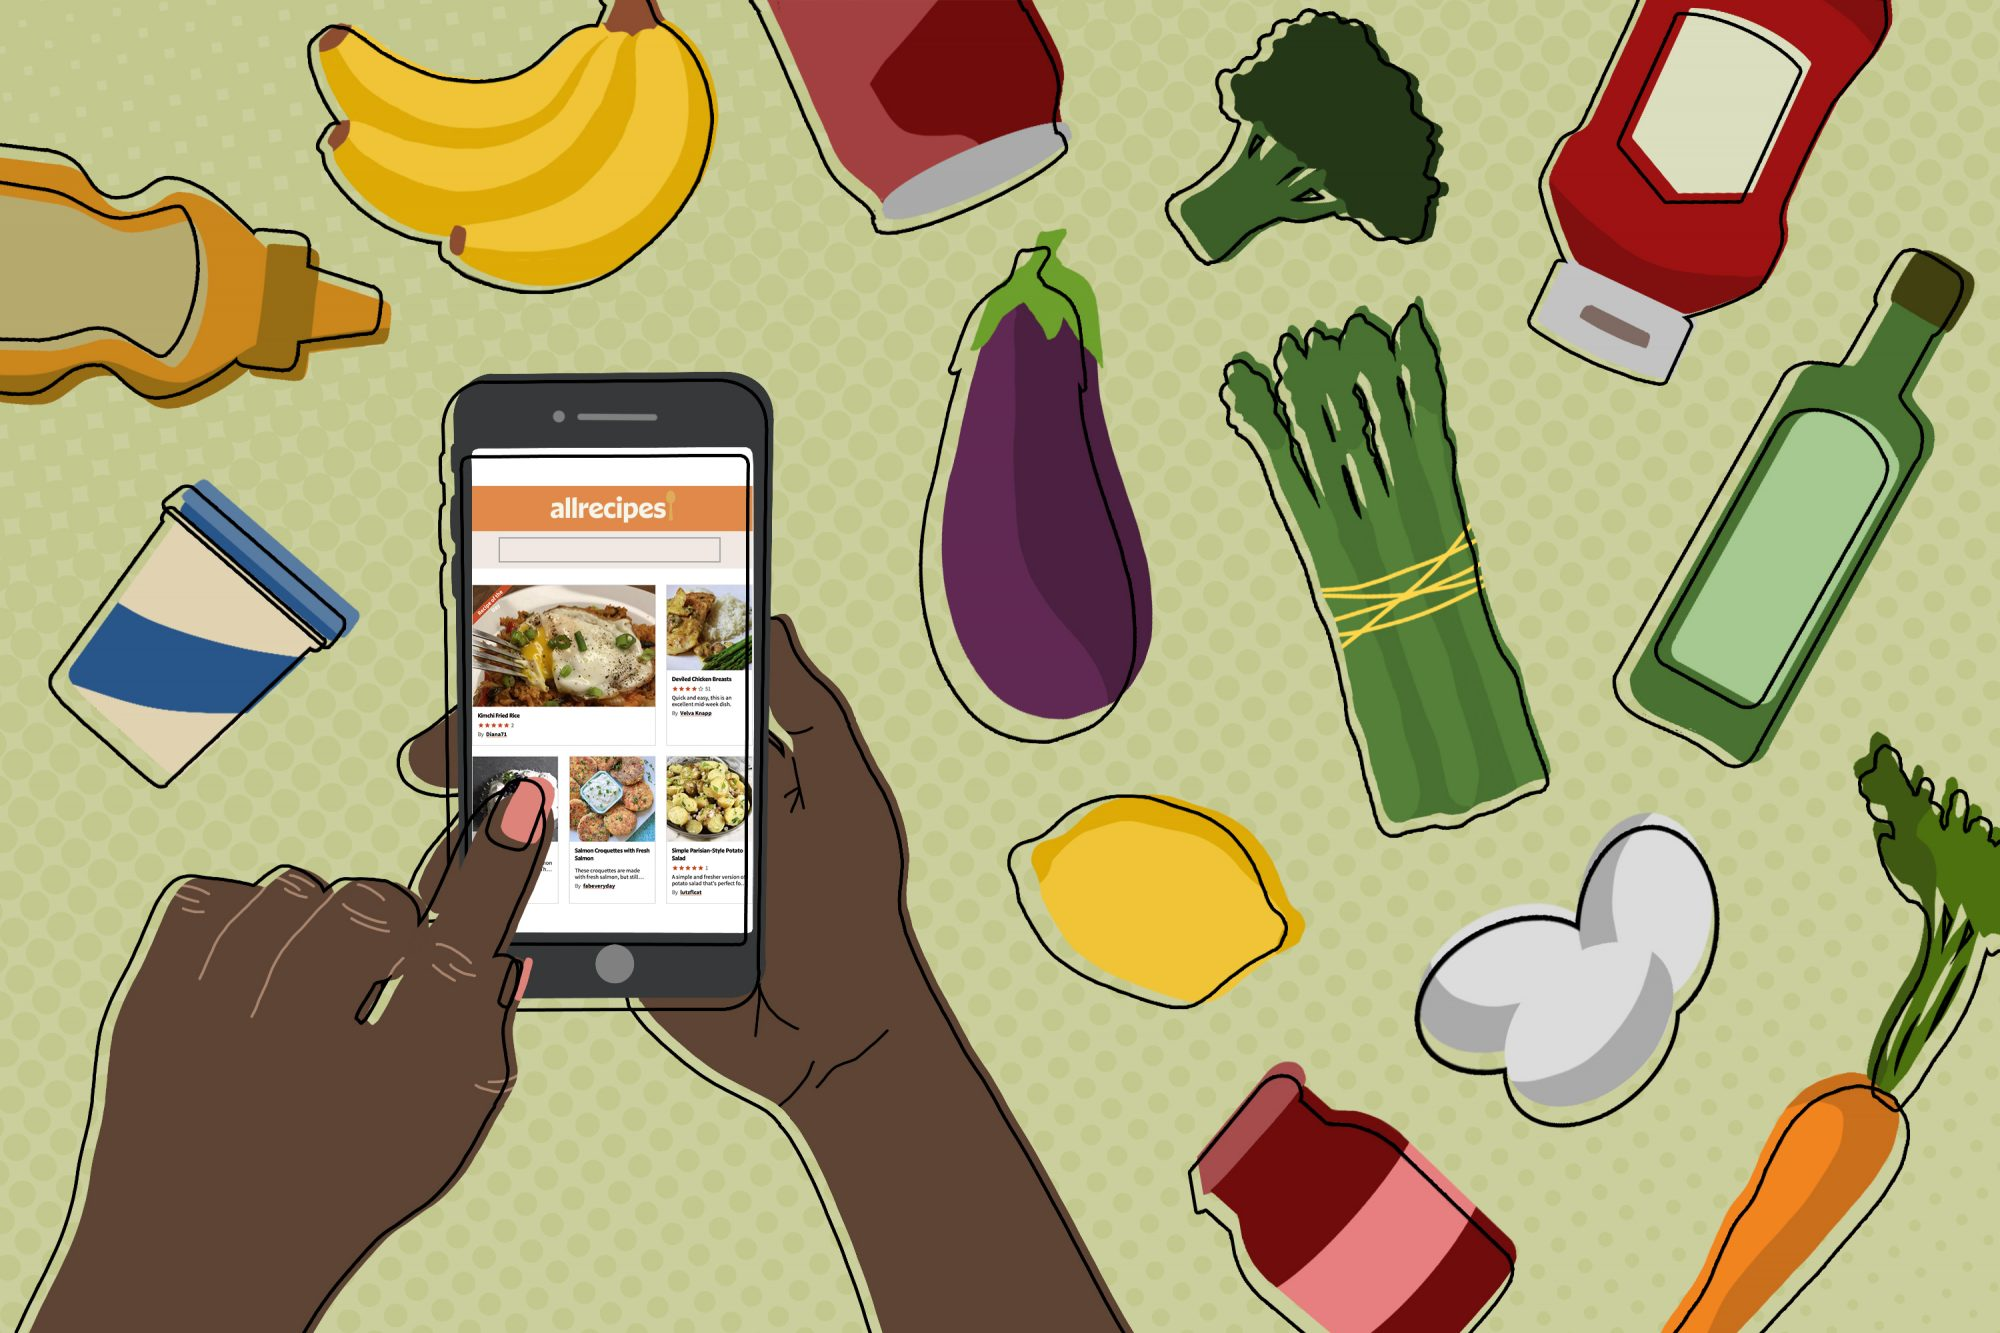 hands using Allrecipes on mobile phone with groceries in the background